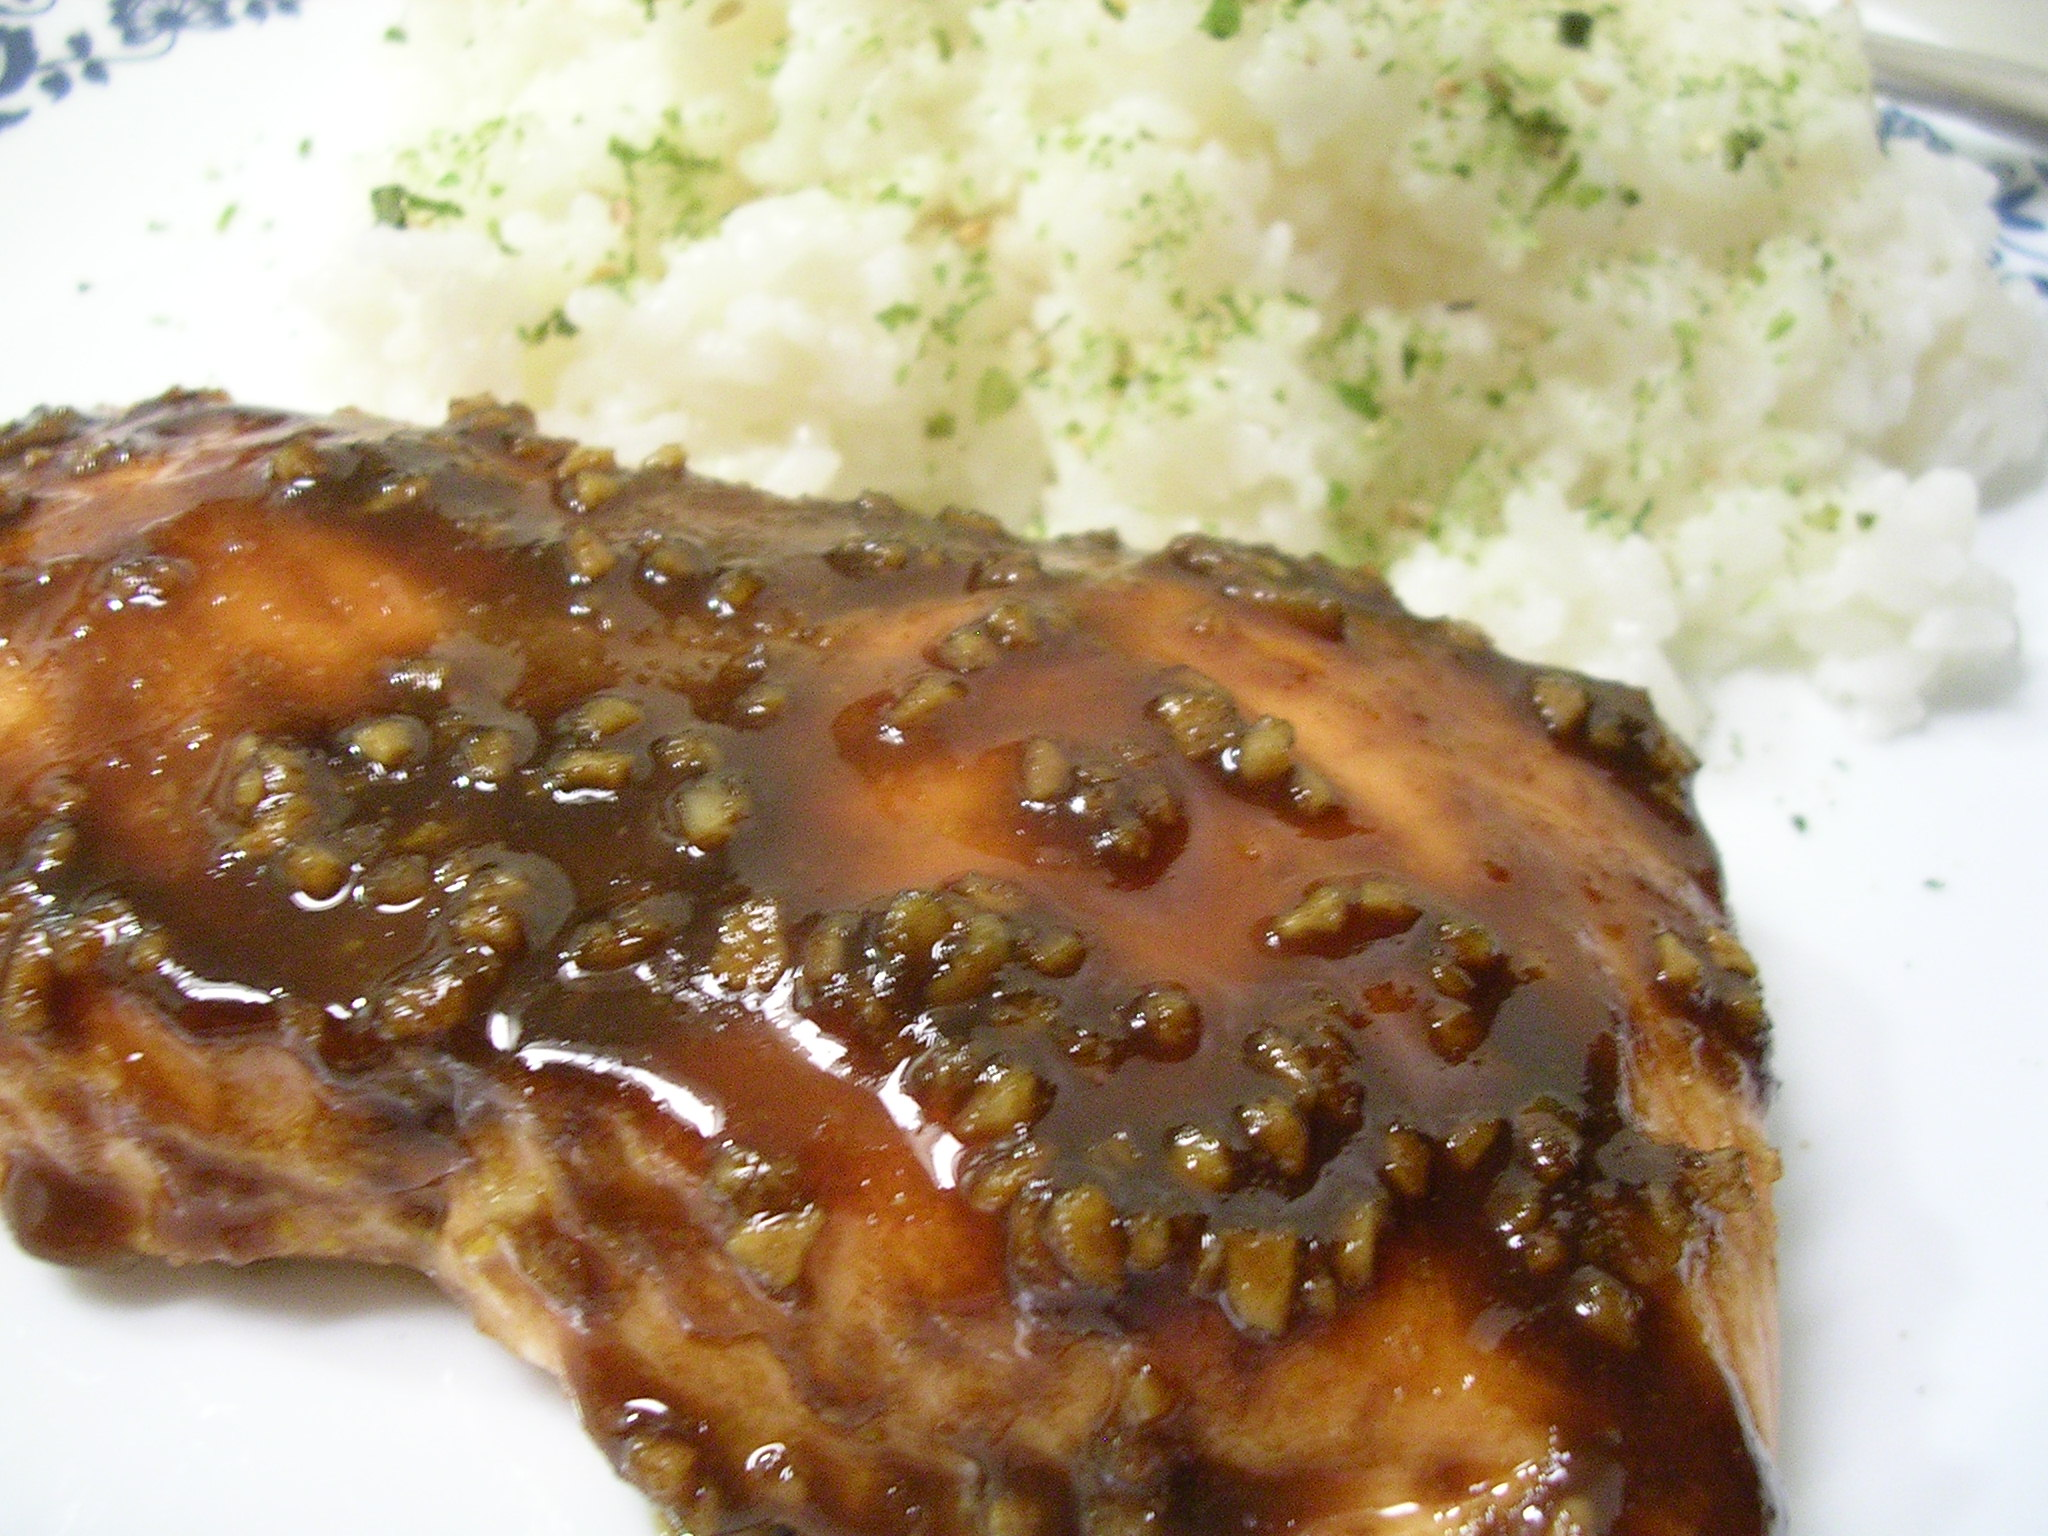 ... balsamic vinegar maple balsamic salmon fillets glazed salmon recipe